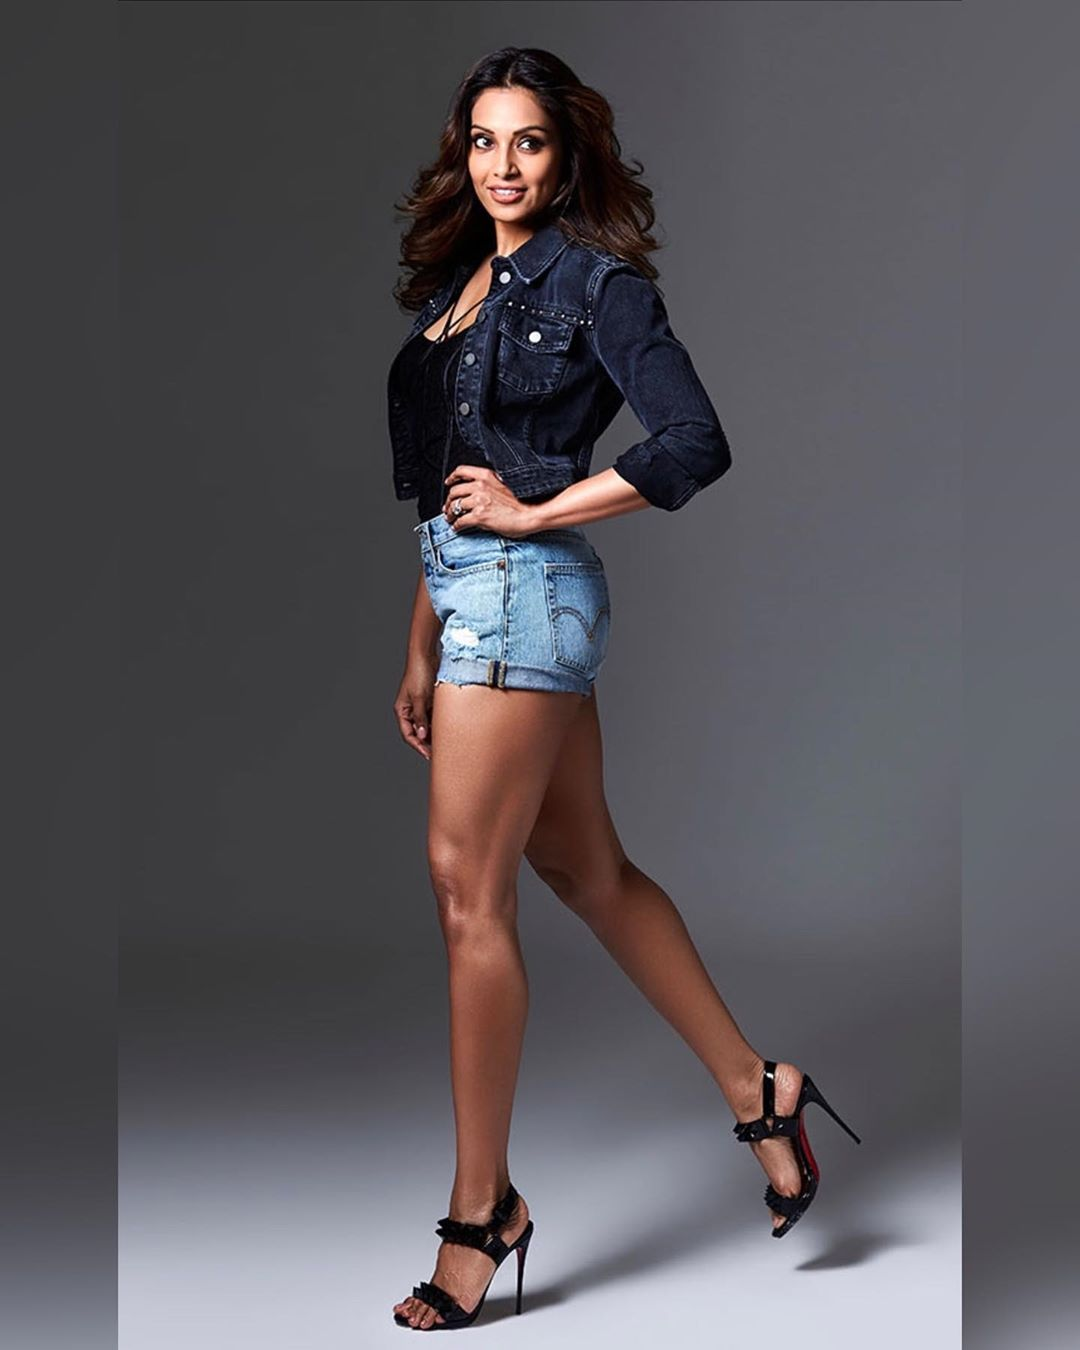 Bipasha Basu Photos